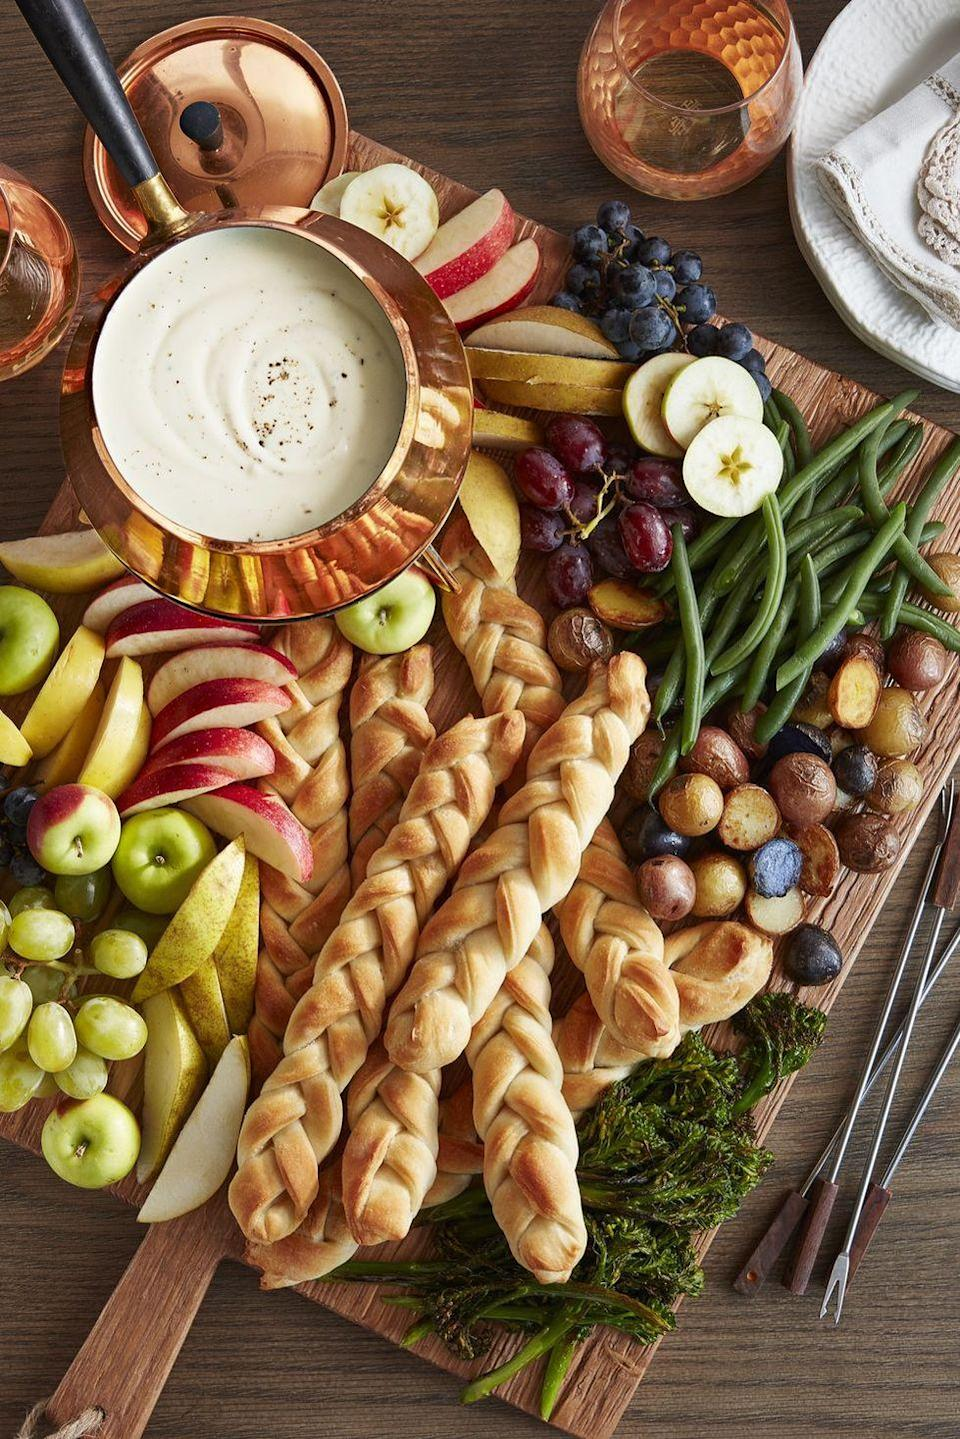 """<p>It doesn't get much easier than these braided breadsticks. You can use either store-bought or homemade pizza dough in this recipe—but your guests won't know the difference. They'll be too busy enjoying the decadent <a href=""""https://www.countryliving.com/food-drinks/a28068814/three-cheese-fondue-recipe/"""" rel=""""nofollow noopener"""" target=""""_blank"""" data-ylk=""""slk:three-cheese fondue"""" class=""""link rapid-noclick-resp"""">three-cheese fondue</a>. </p><p><strong><a href=""""https://www.countryliving.com/food-drinks/a28069249/cable-knit-breadsticks-recipe/"""" rel=""""nofollow noopener"""" target=""""_blank"""" data-ylk=""""slk:Get the recipe"""" class=""""link rapid-noclick-resp"""">Get the recipe</a>.</strong> </p>"""